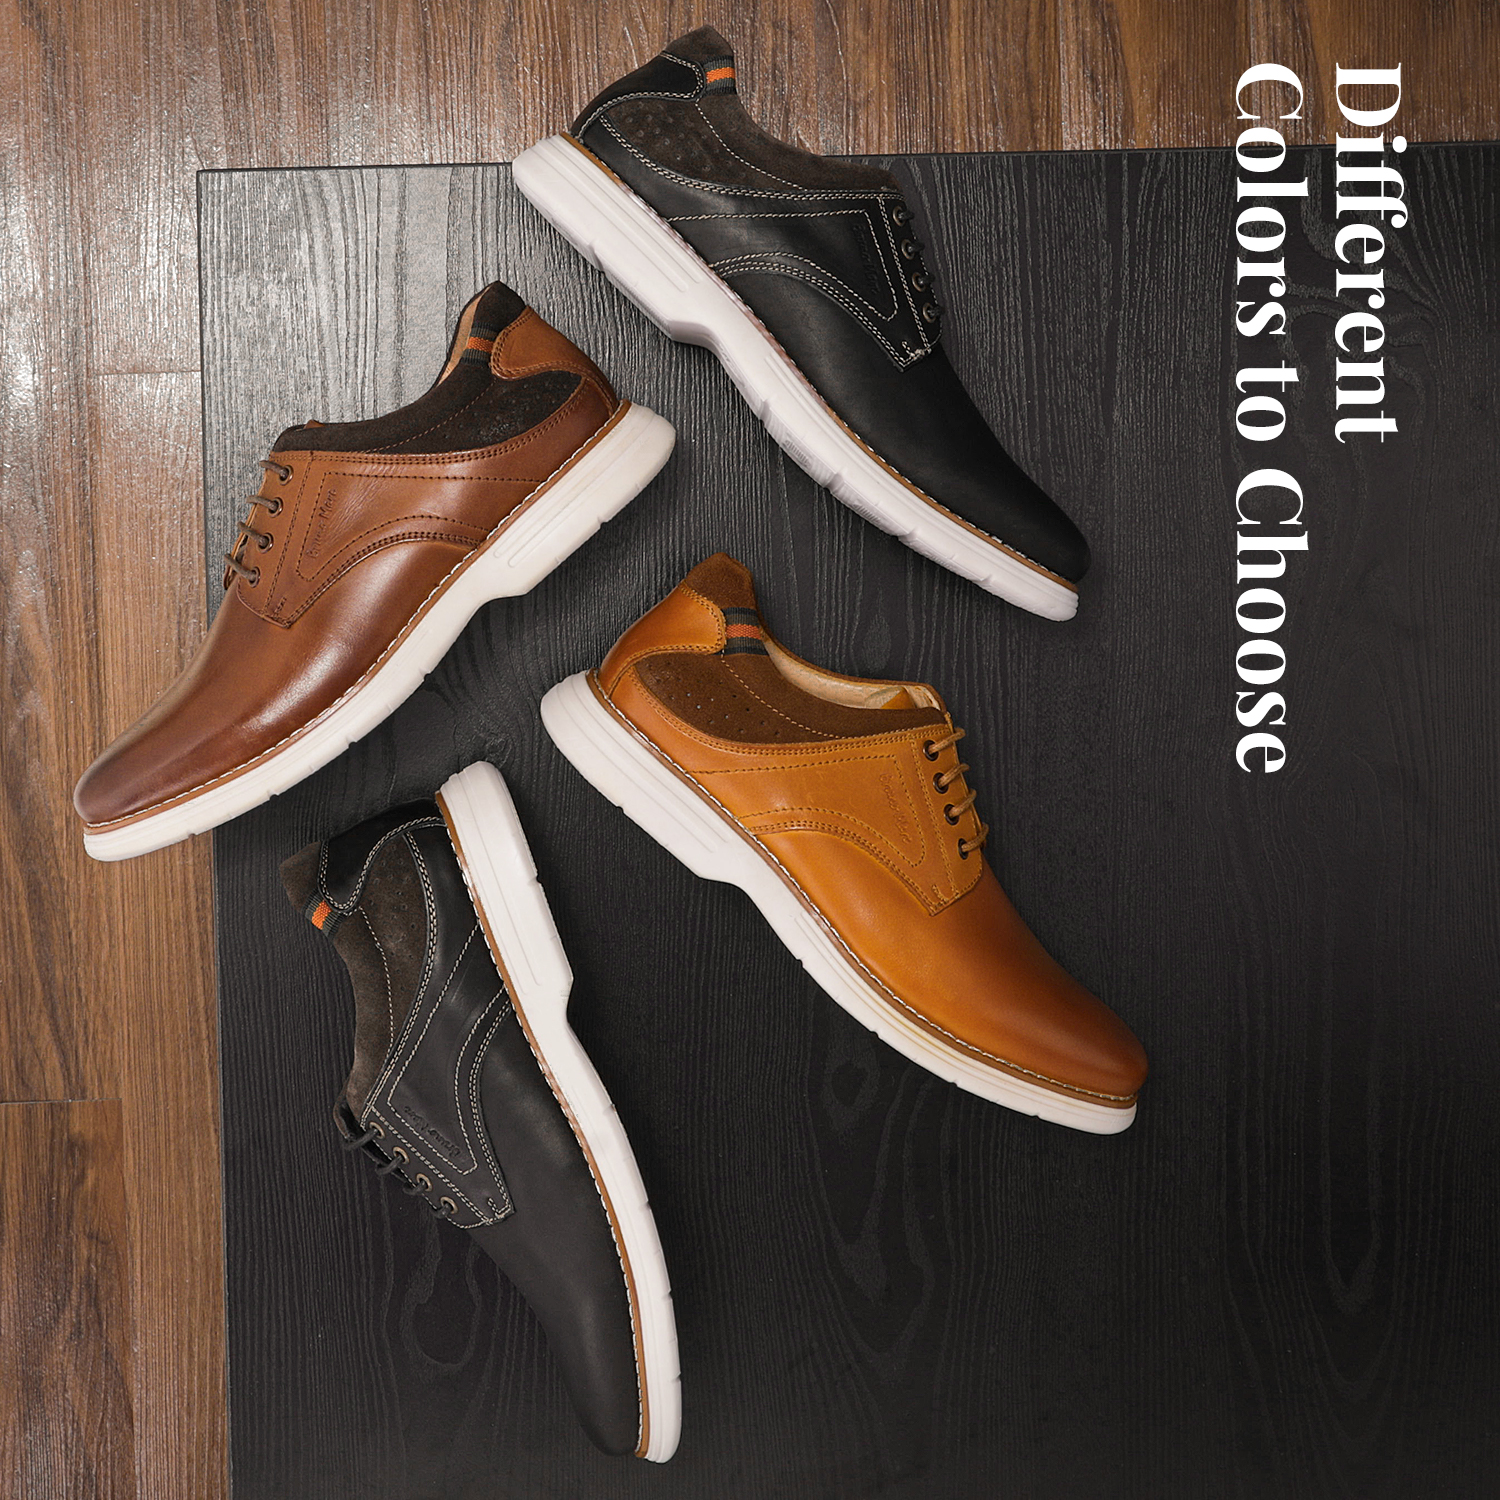 Mens-Fashion-Genuine-Leather-Business-Dress-Sneakers-Casual-Lace-up-Oxford-Shoe thumbnail 37